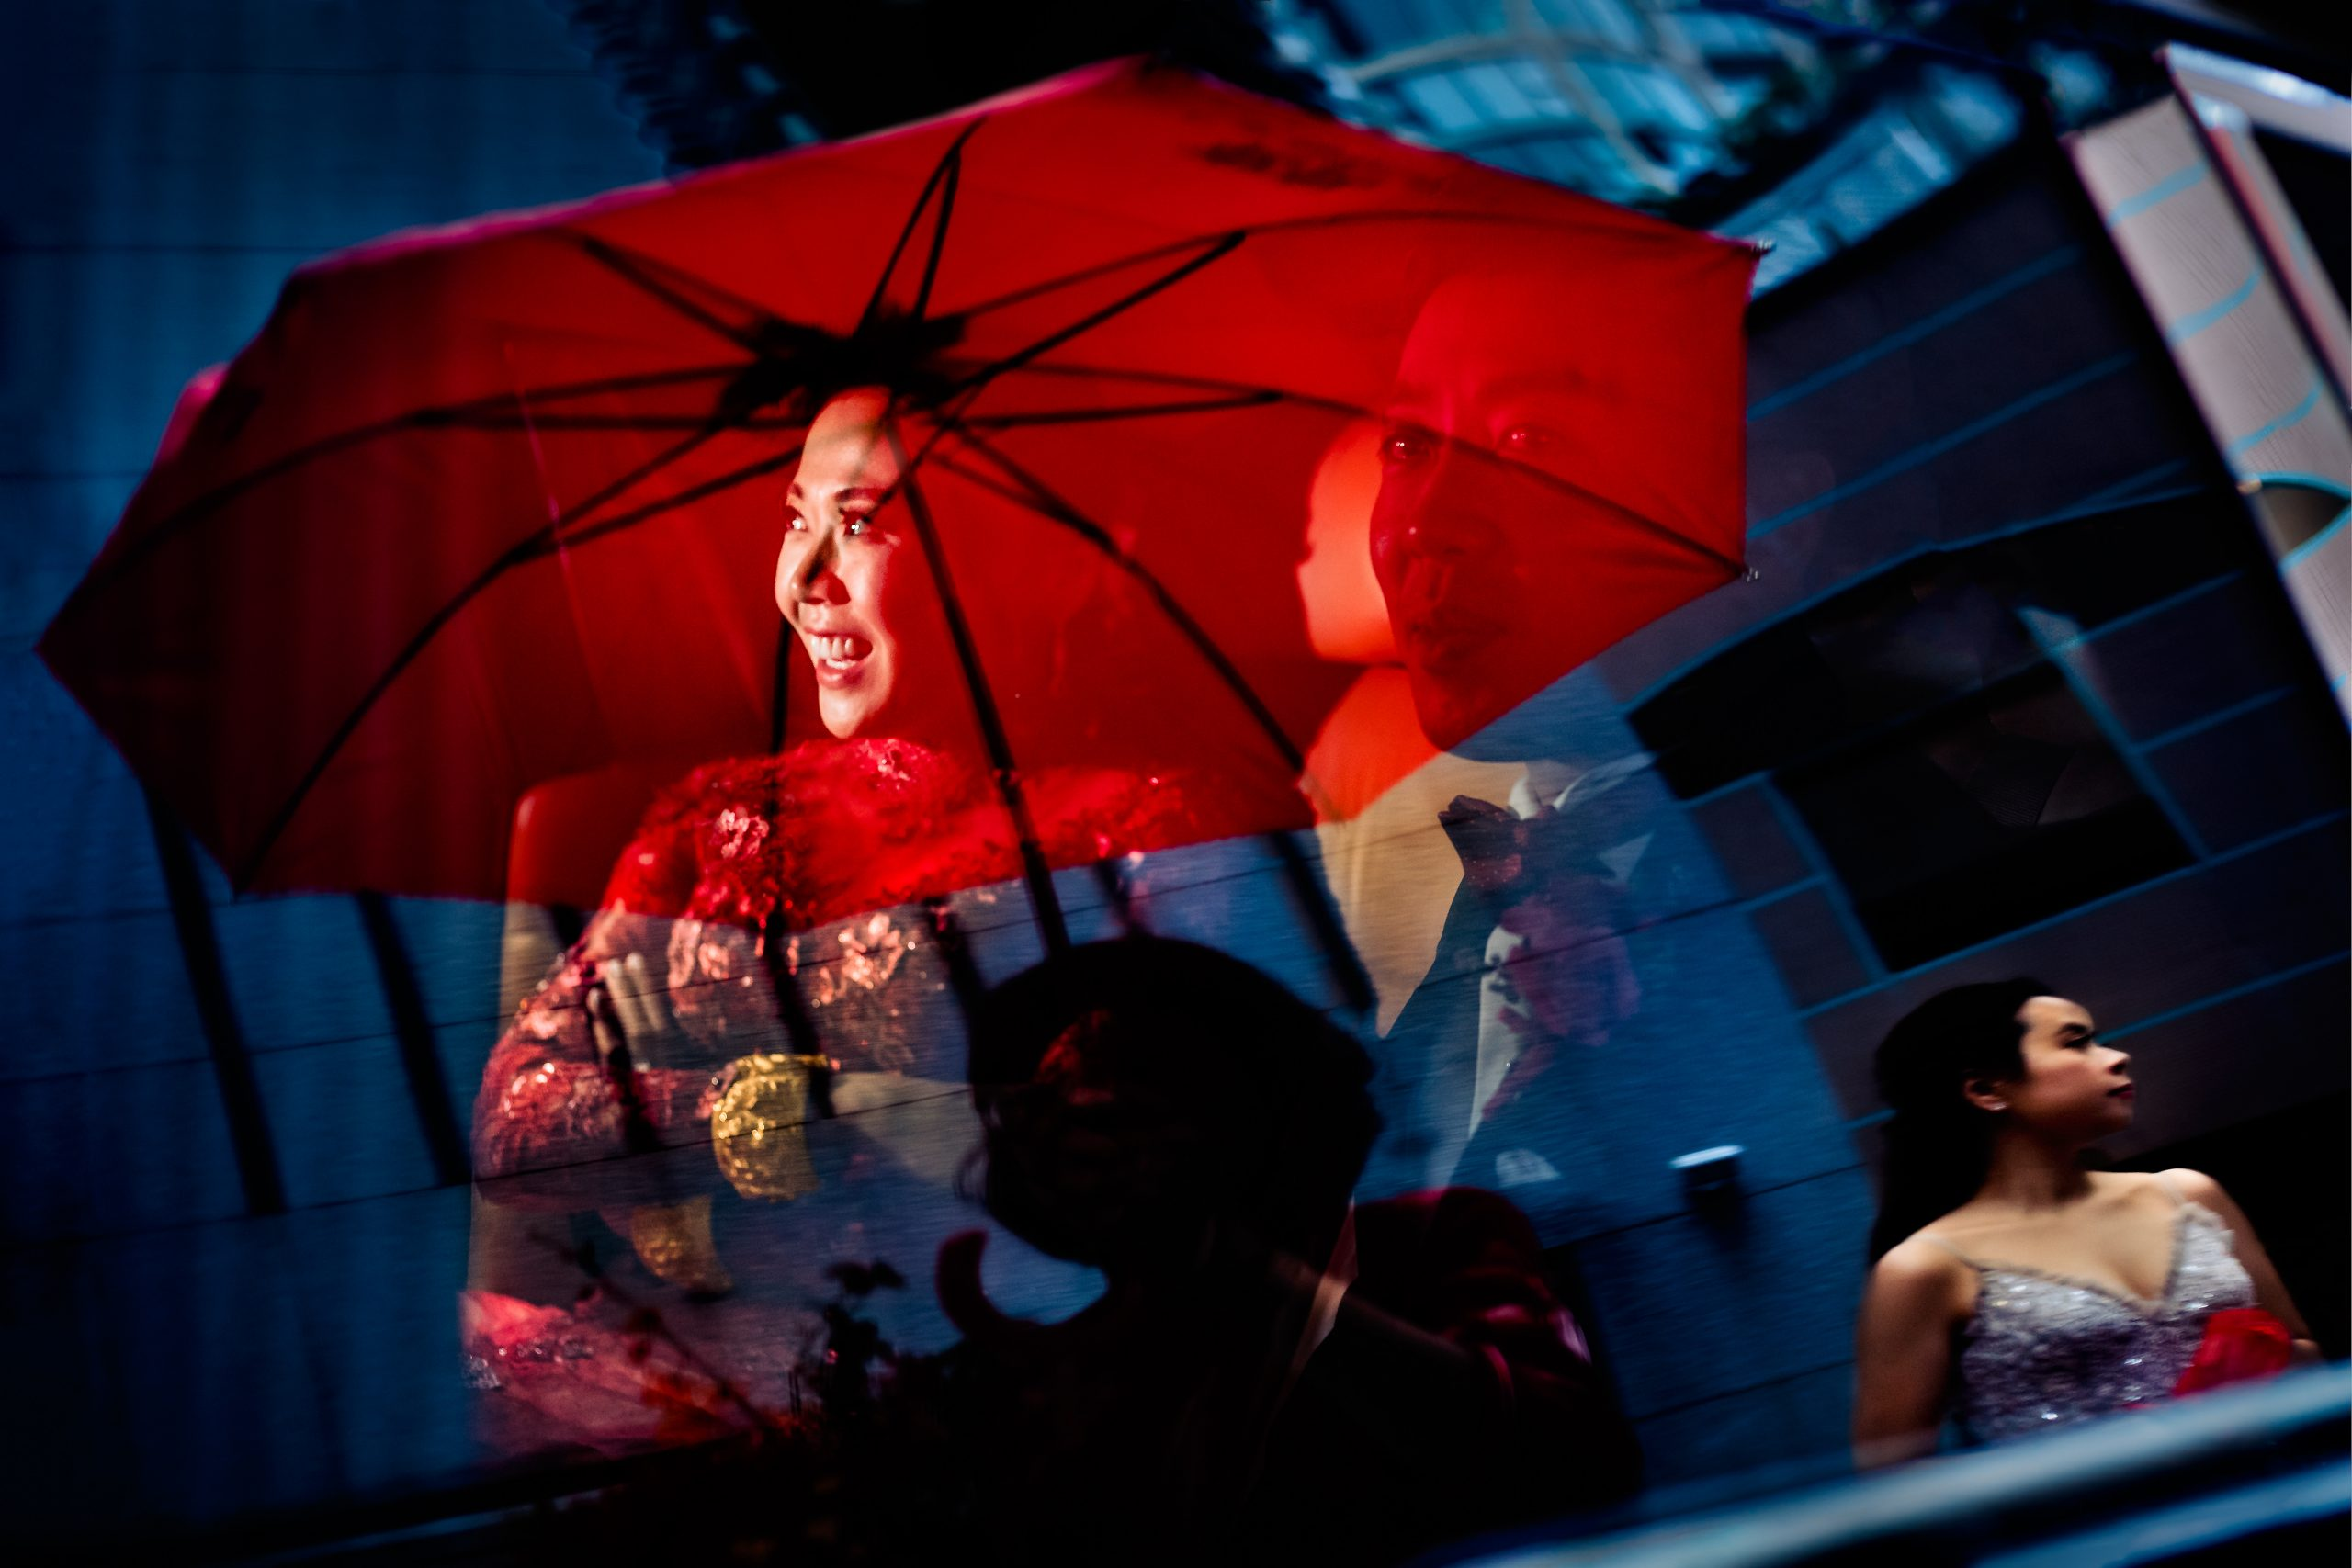 Bride and groom sit together in car with reflection of a red umbrella